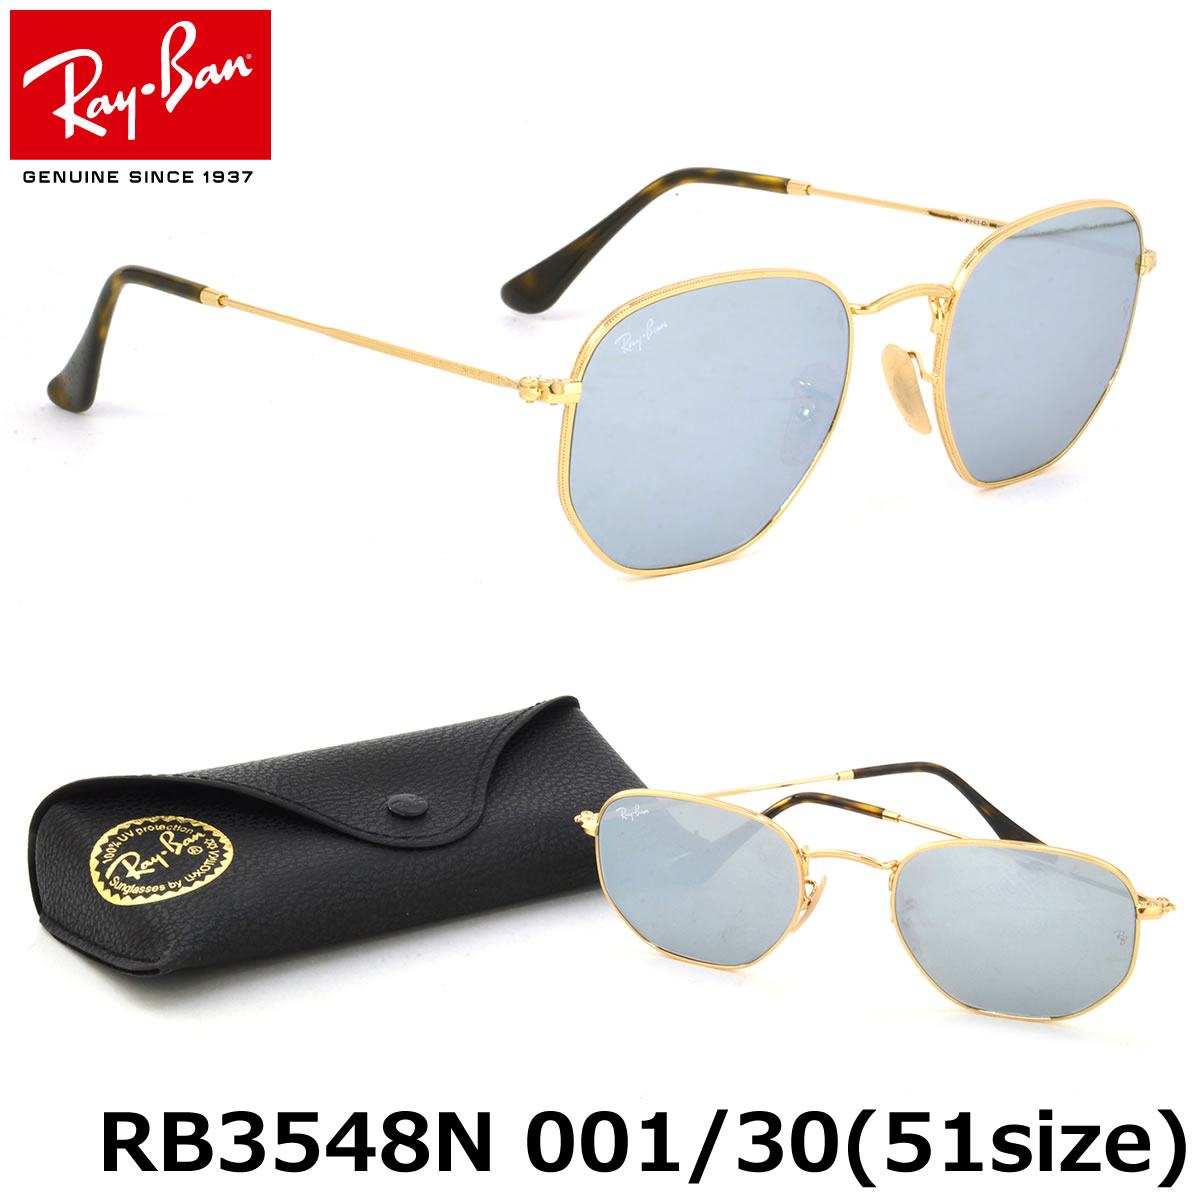 b460c5ff6e Ray-Ban Sunglasses RB3548N 001 30 51size HEXAGONAL FLAT LENS GENUINE NEW rayban  ray ban